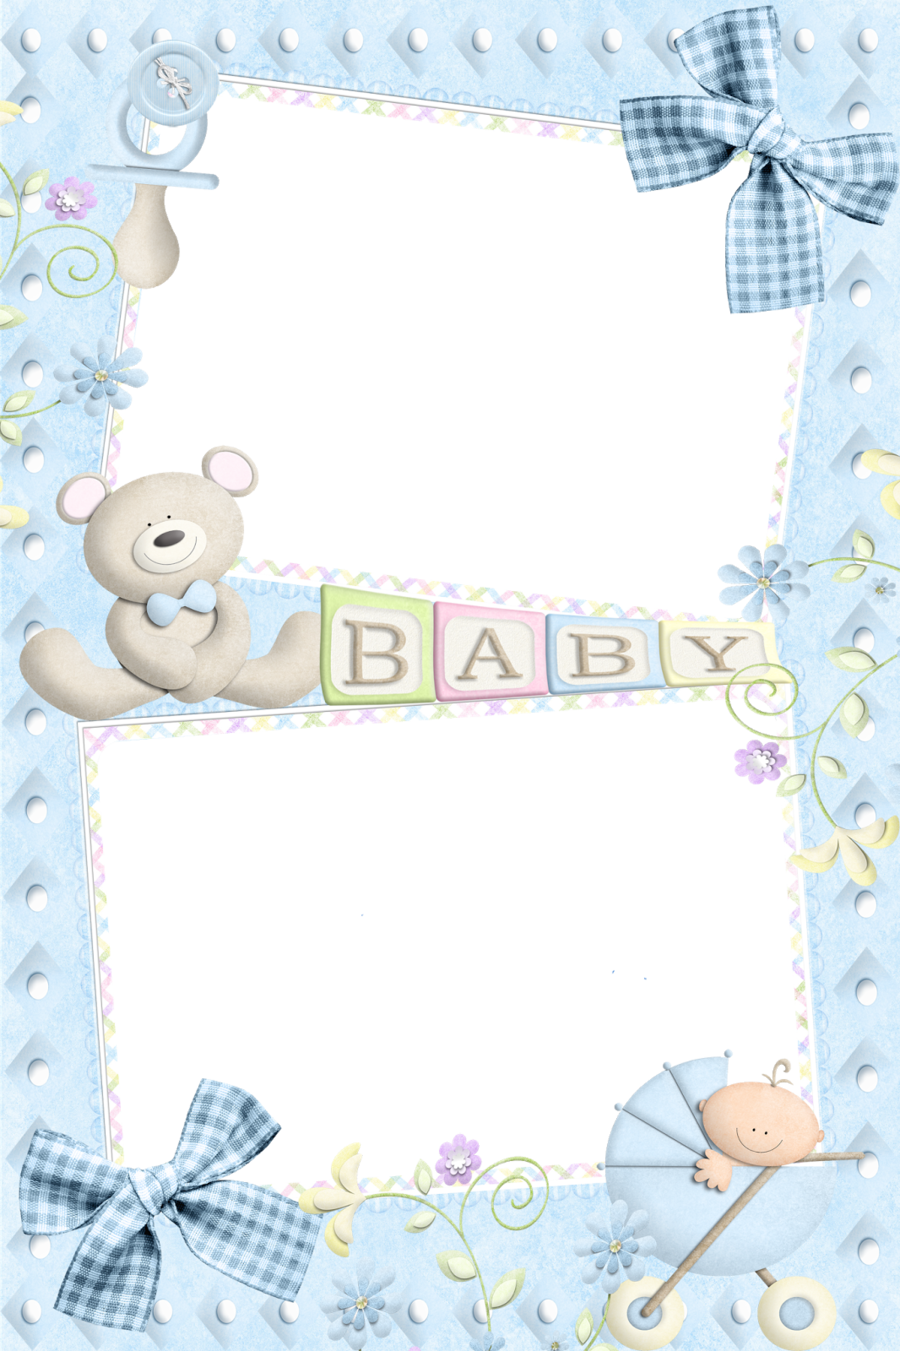 Clipart Frames Free Download ✓ All About Clipart